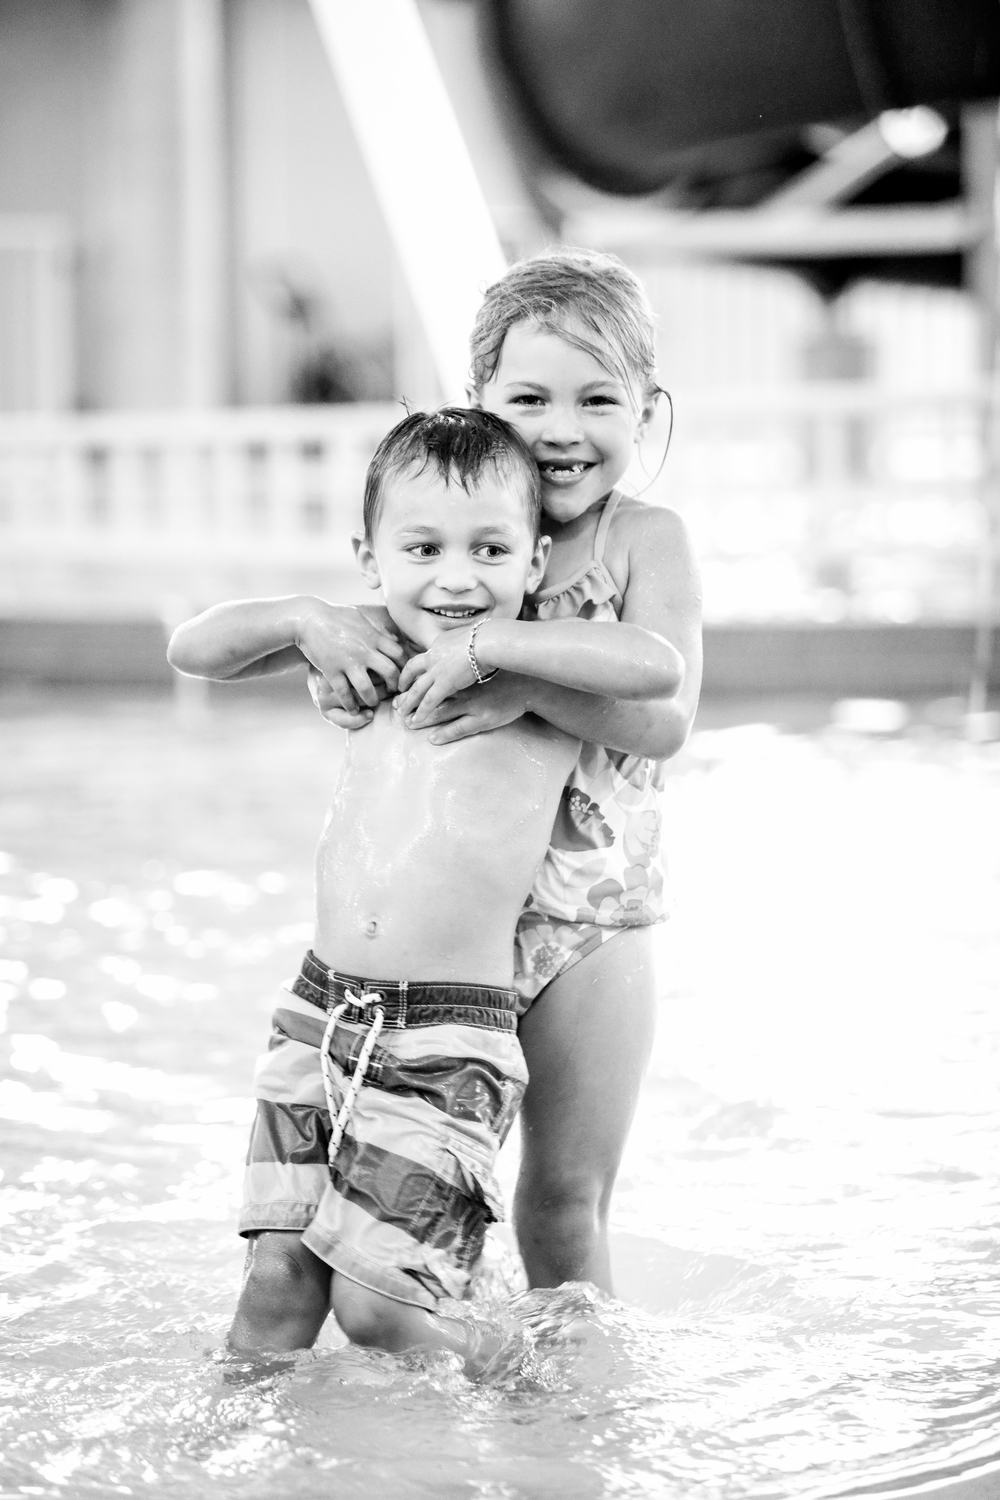 Matthew at the YMCA with his sister Josie. Birdies4Life provided swimming lessons and currently funds this opportunity to help manage his special need.